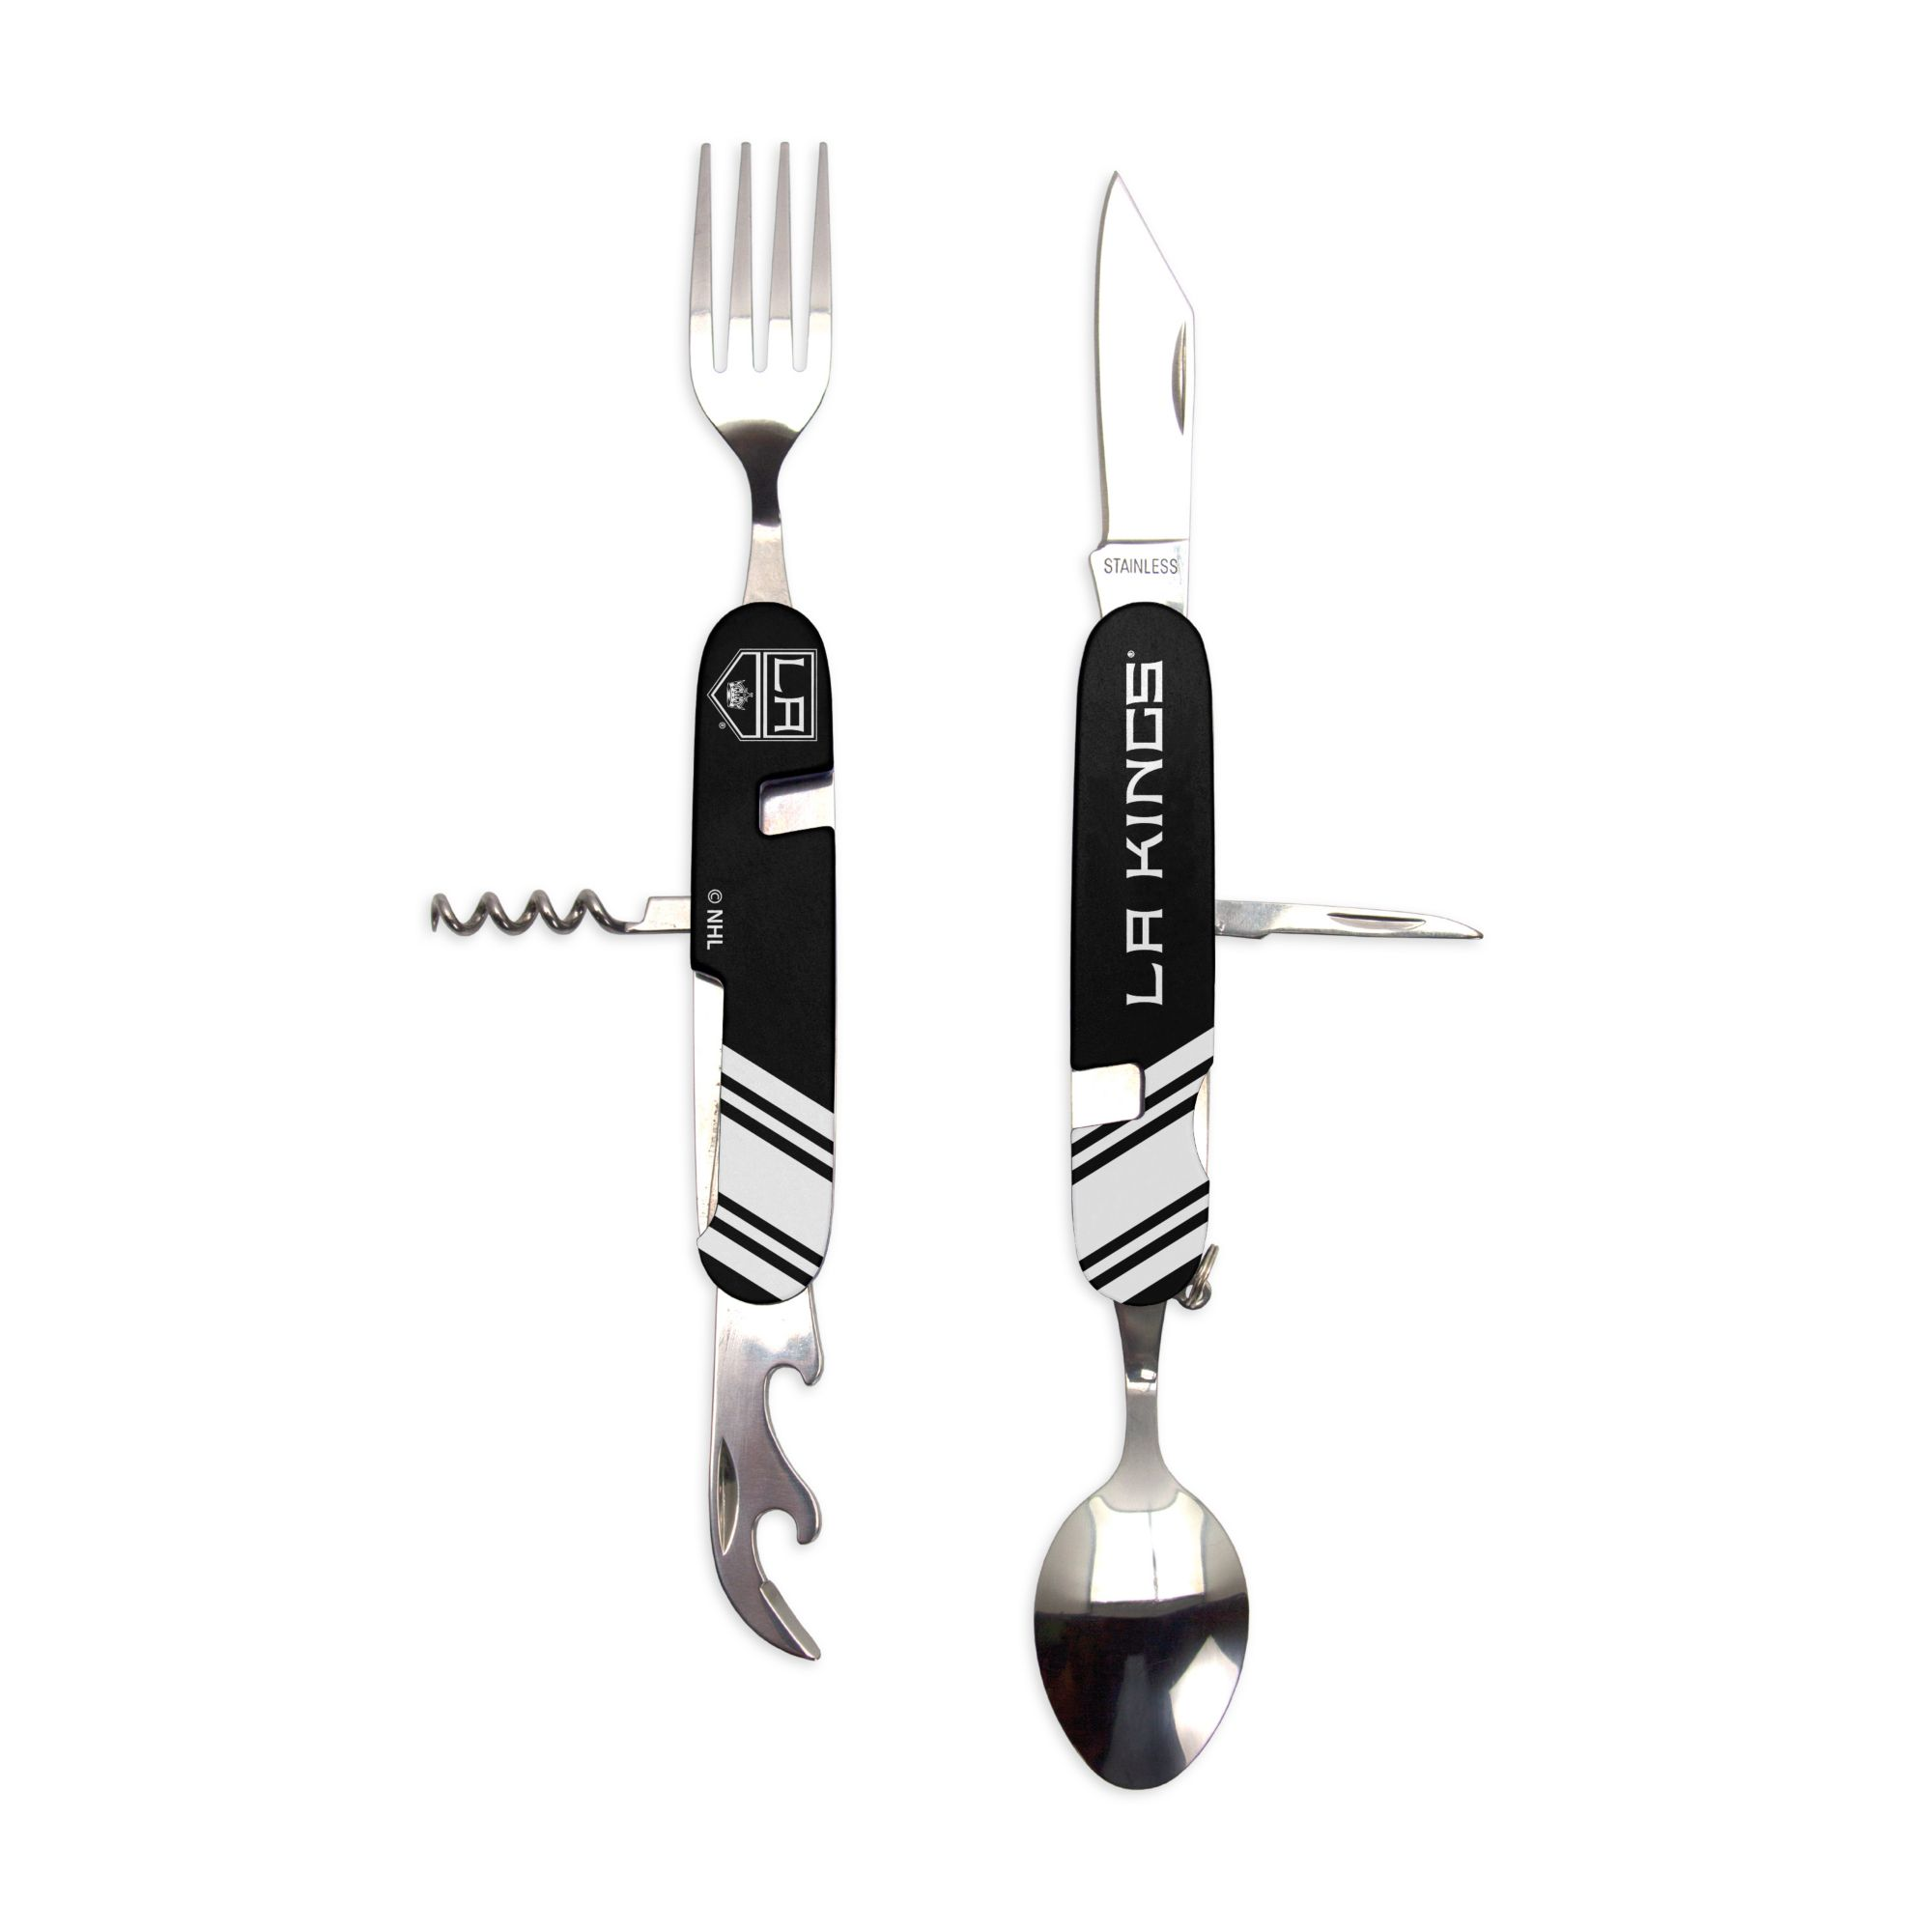 Sports Vault Los Angeles Kings Utensil Multi-Tool, stainless steel